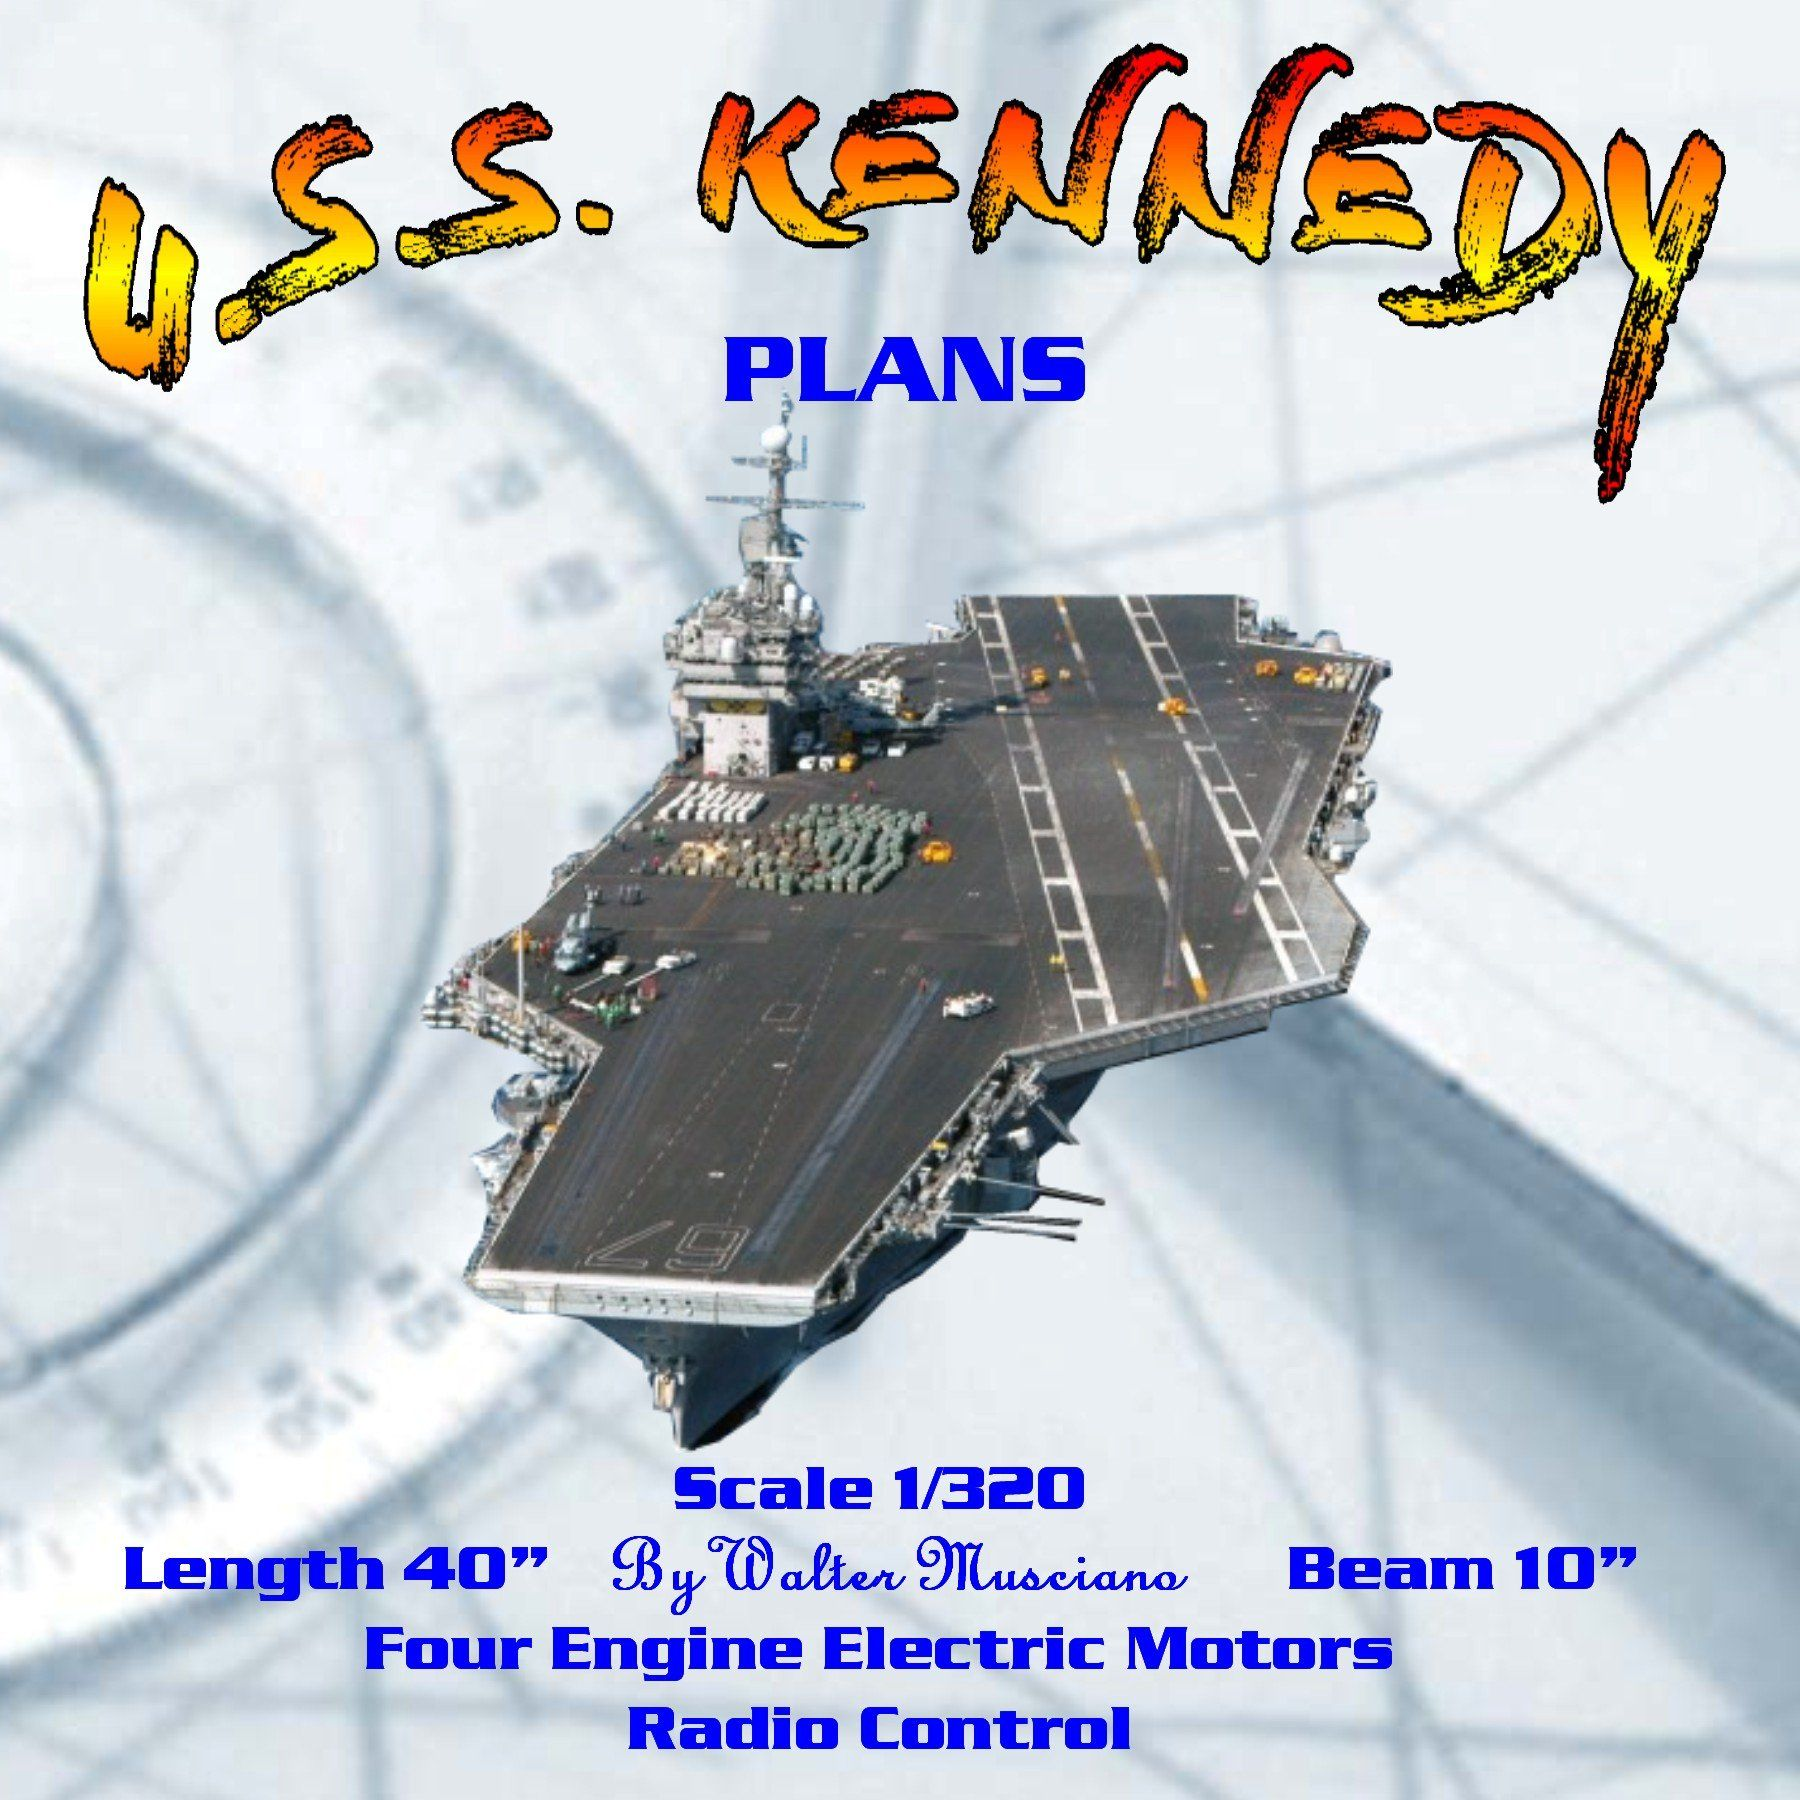 "listing is for Full Size Printed Plans and ArticleU.S.S. KENNEDY AIRCRAFT CARRIERScale 1/320Length 40""Beam 10""Four Engine Electric MotorsRadio ControlFull Size Printed Plan on Two SHEET 42"" x 30""Eight page article Building Notes, Photos (not all shown)By Walter Musciano Our model passes by at top speed. The four propellers provide plenty of realistic wake as they push the sleek hull through the water. Model runs at a speed comparable to that of a very fast walk. Hull is deep in the water like th"